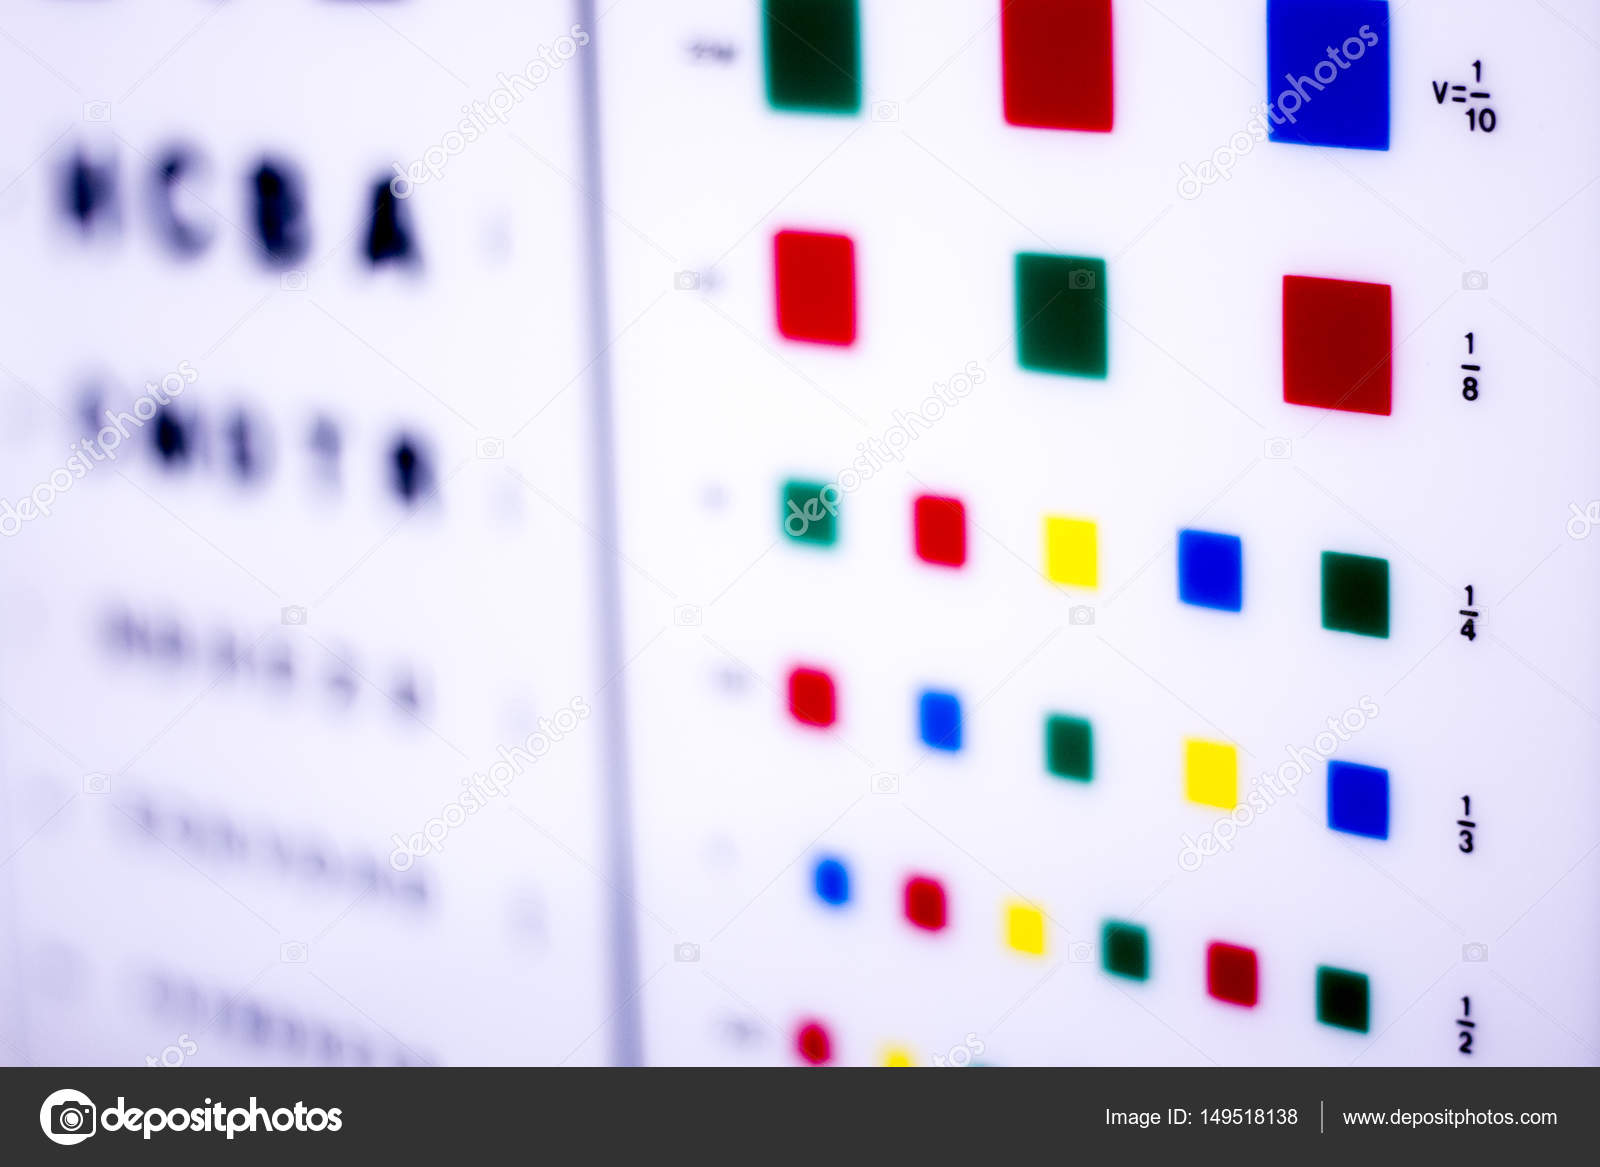 Optician eye test chart stock photo edwardolive 149518138 opticians ophthalmology and optometry eye test chart to test sight and vision for patients with eyesight issues photo by edwardolive nvjuhfo Images